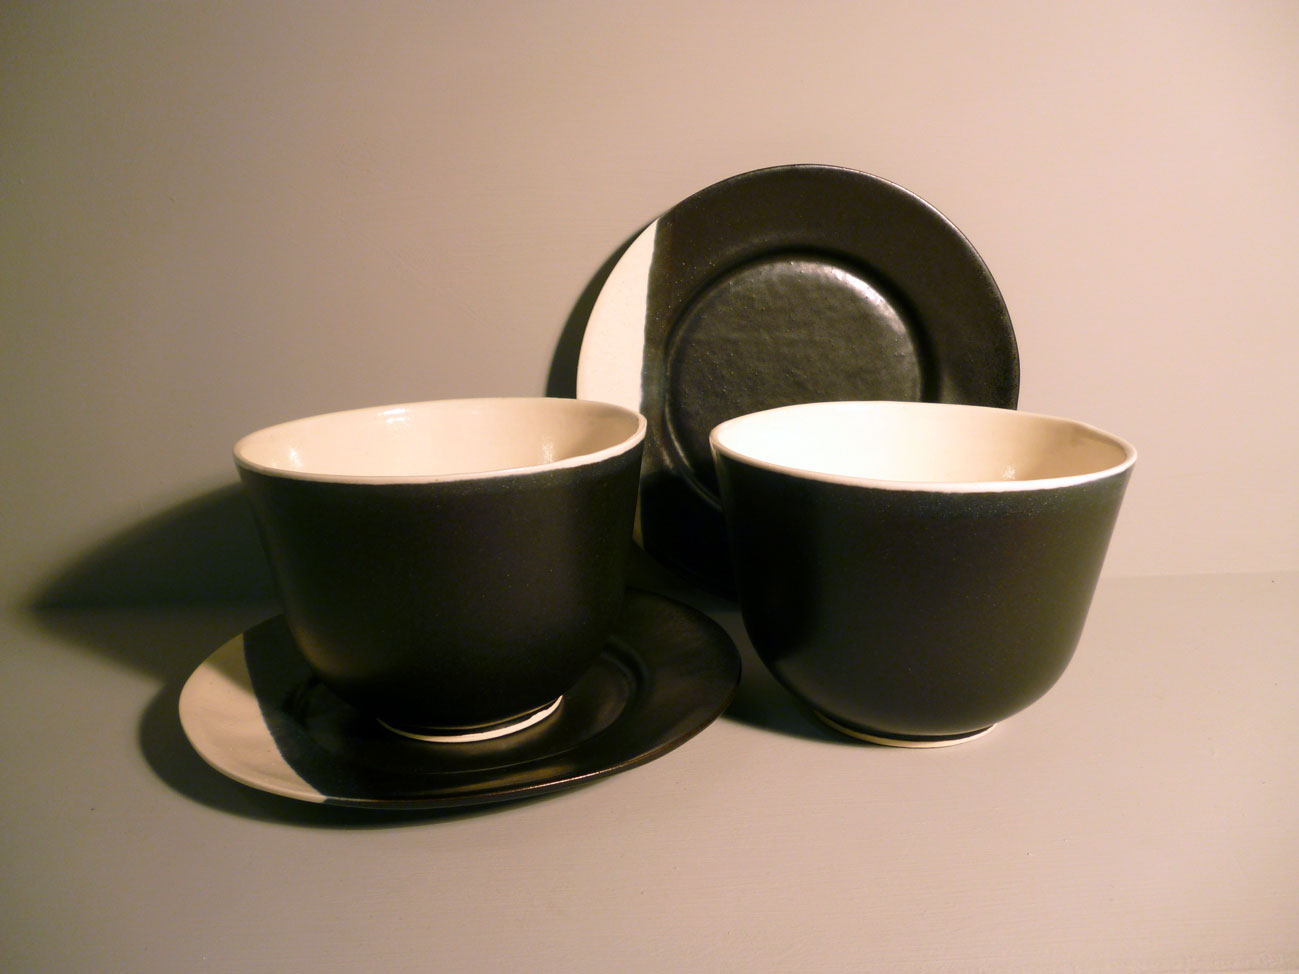 2-x-Bell-Bowl-and-Plate-Set in Graphite-Black